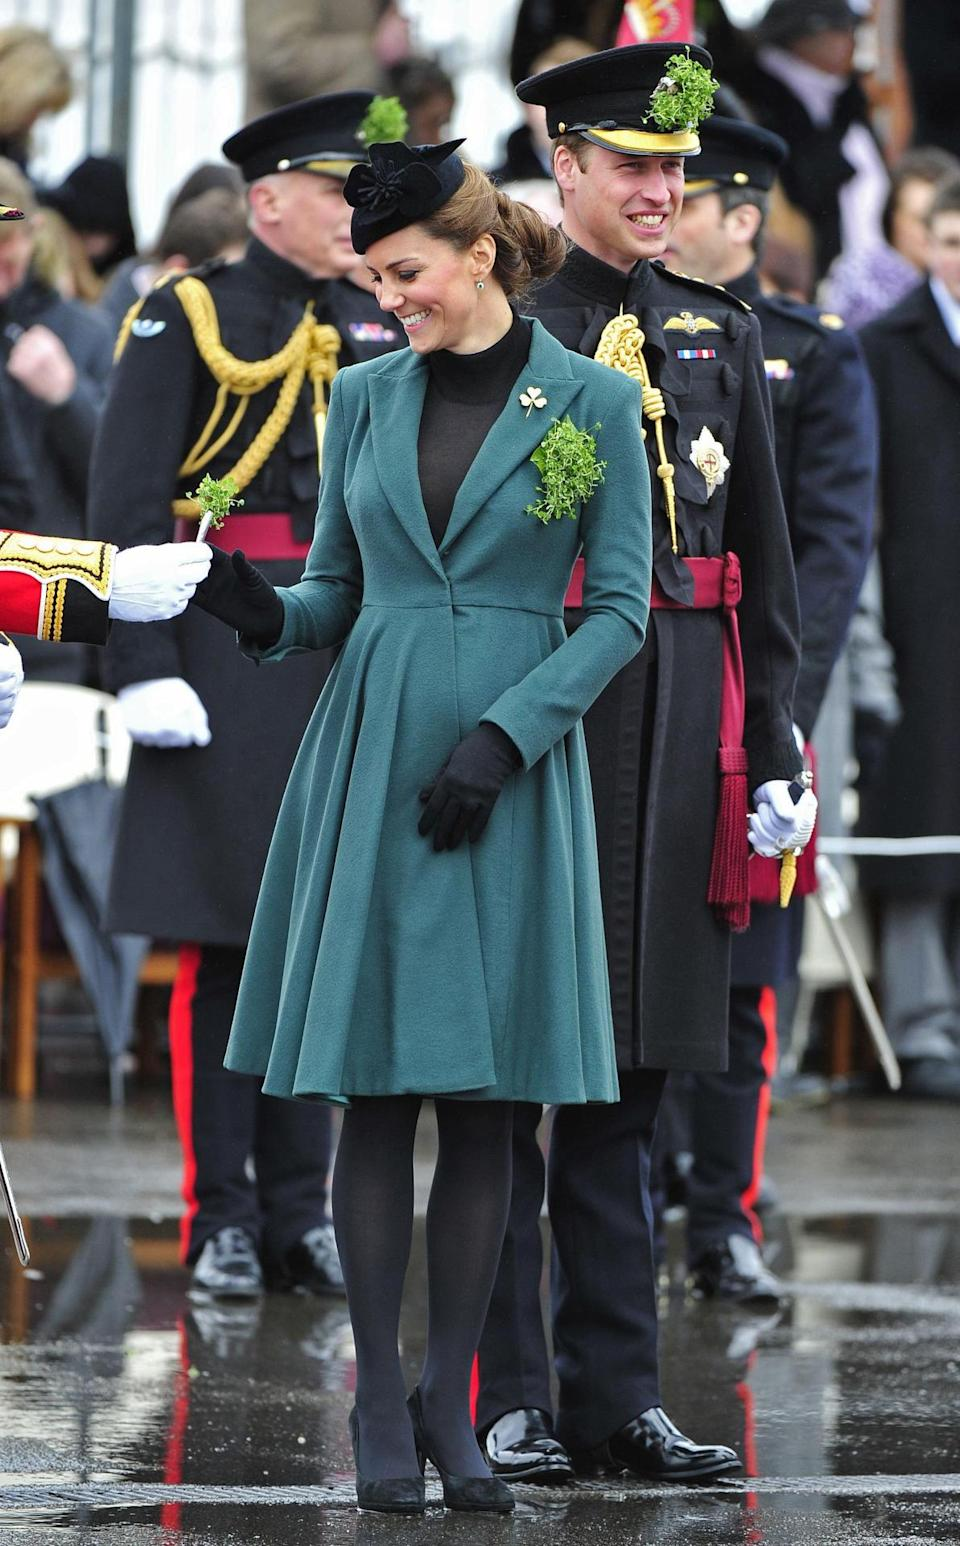 <p>Kate attended a St. Patrick's Day parade in a dark green Emilia Wickstead coat, a black Lock & Co hat and suede Episode heels. </p><p><i>[Photo: PA]</i></p>